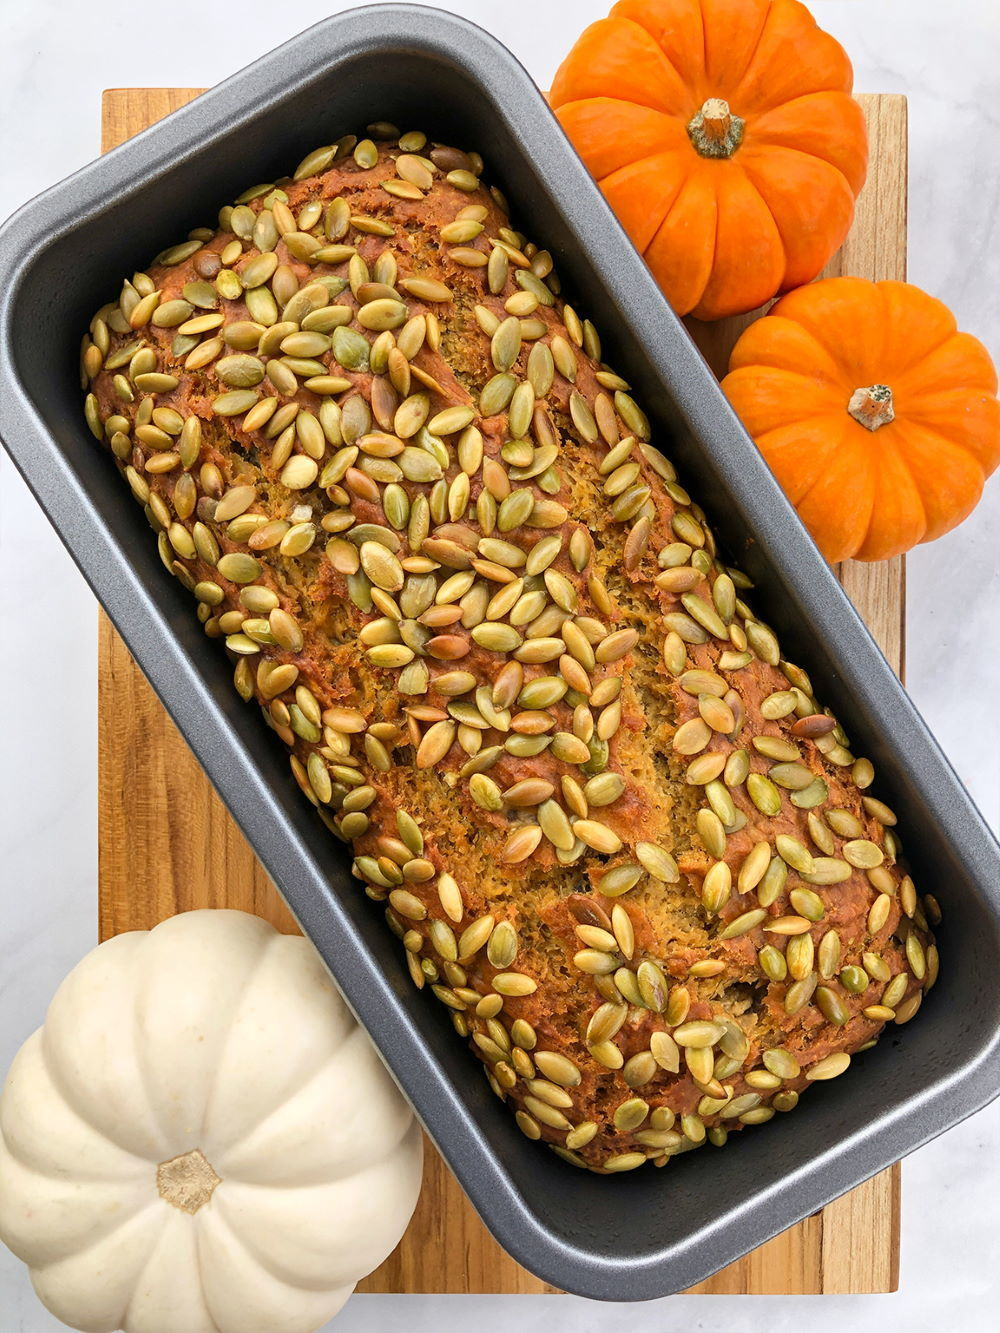 Pumpkin banana bread in loaf pan, gourds on the side.